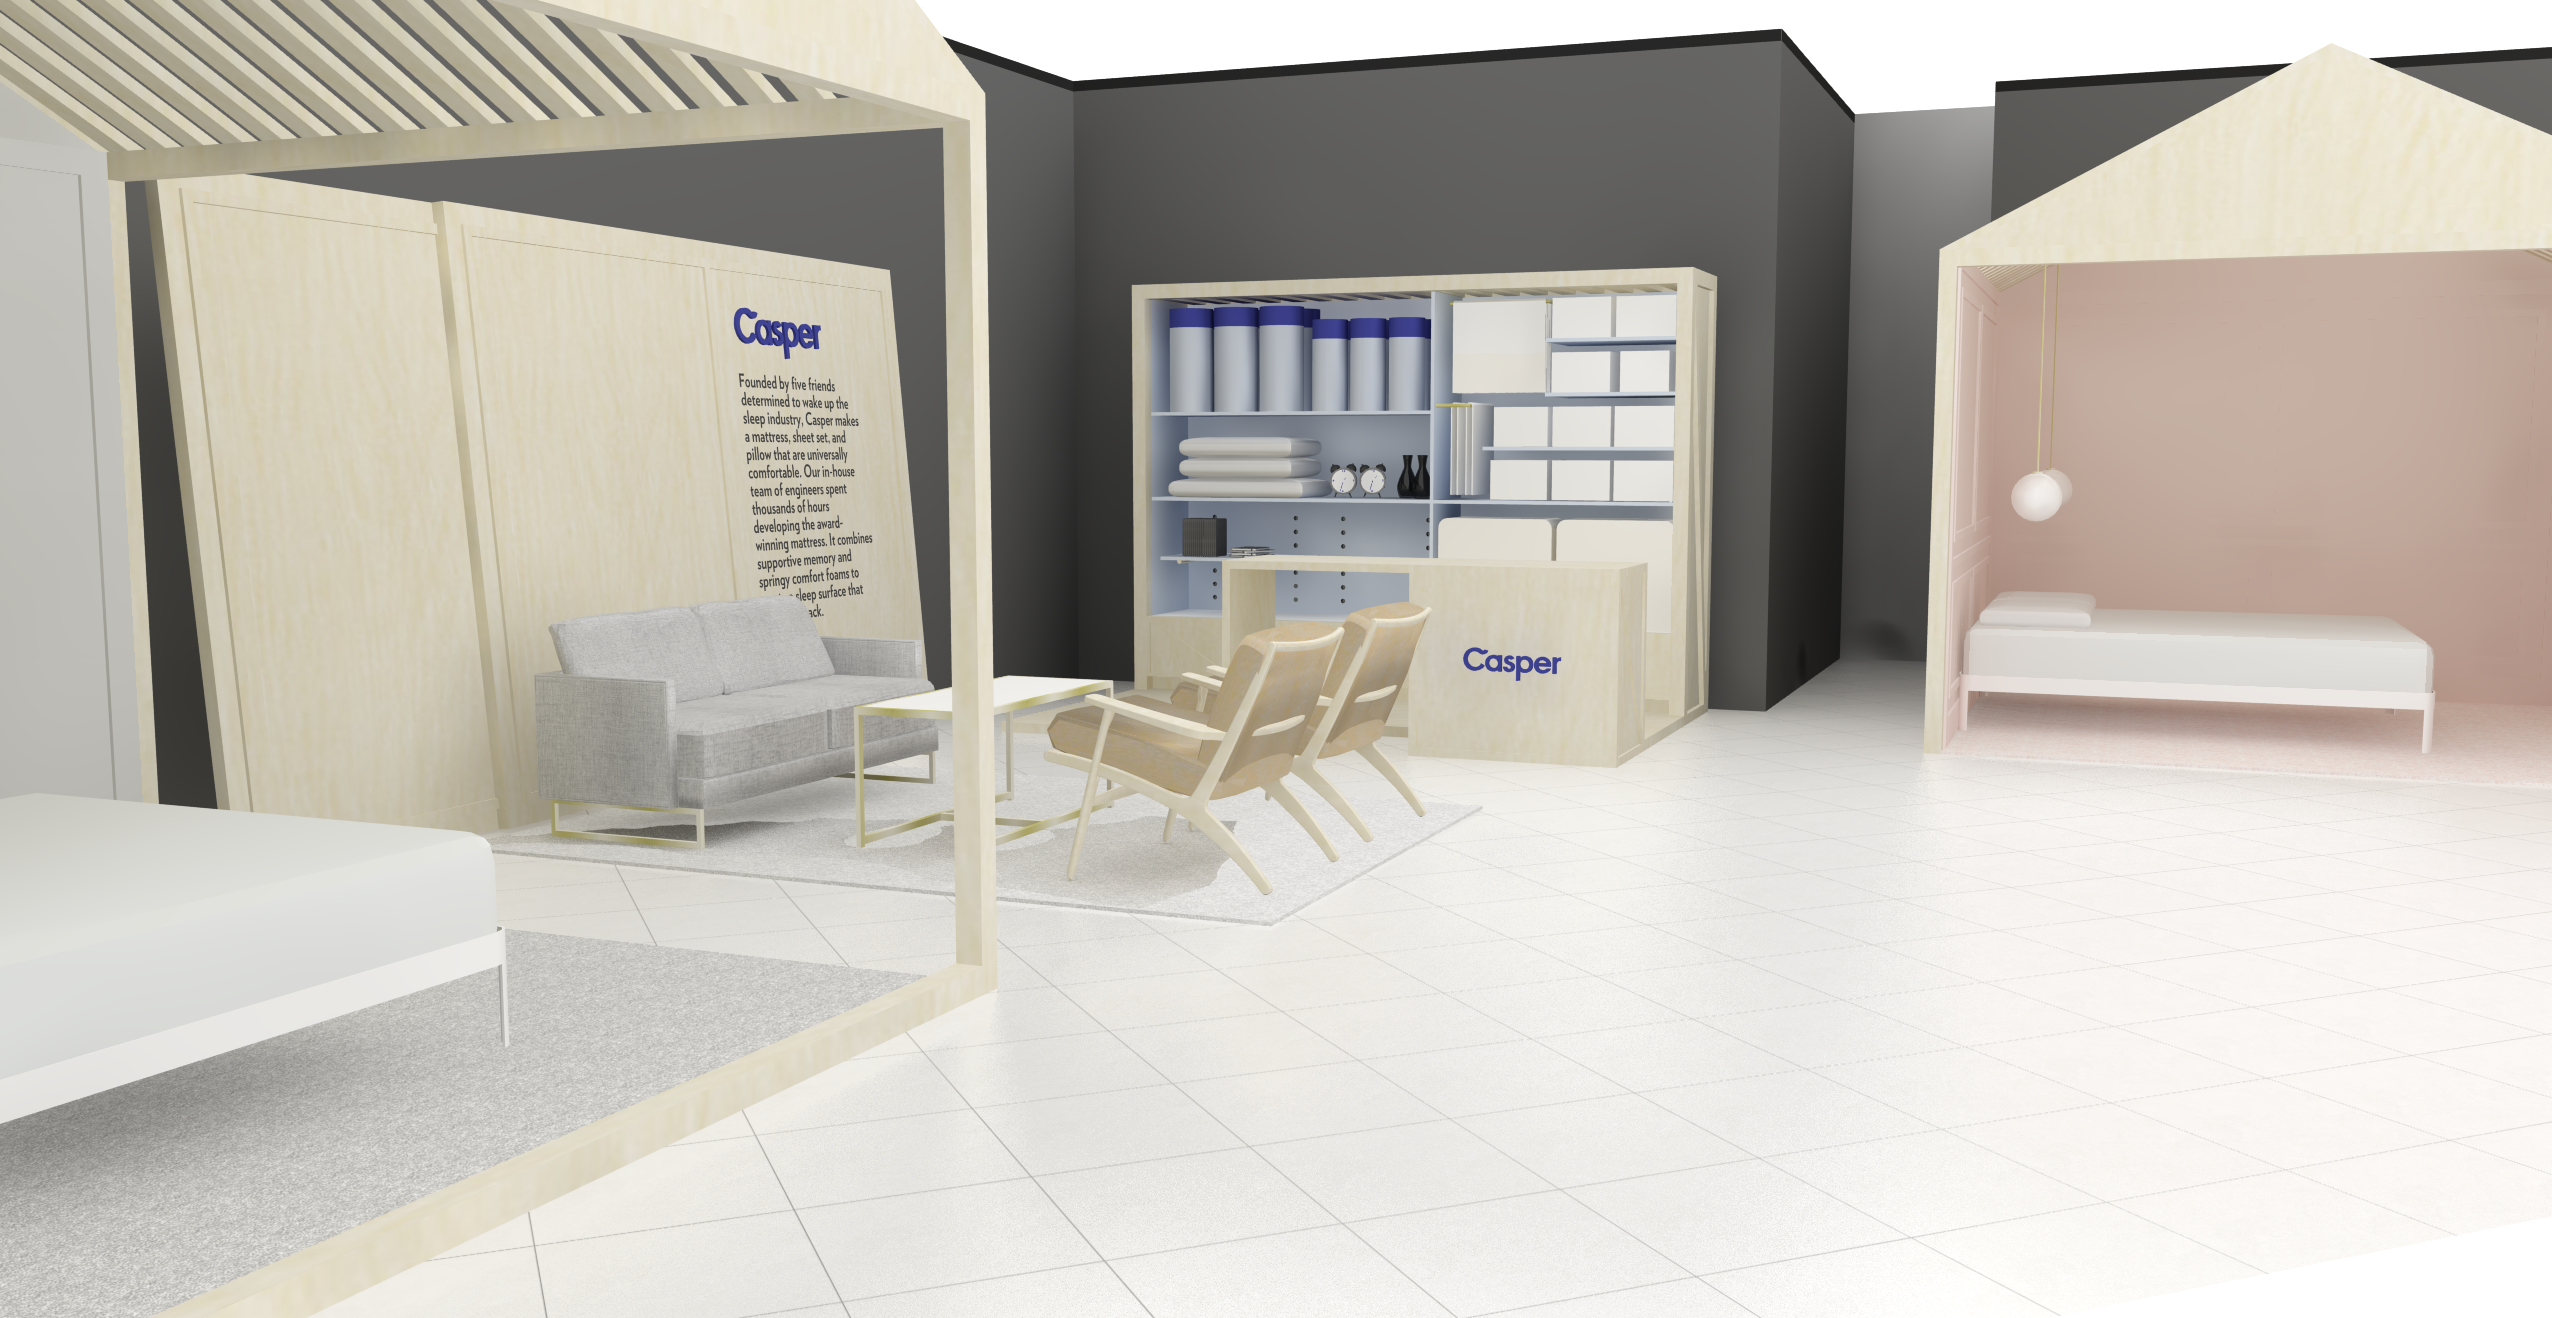 casper pop up stores will open across north america curbed. Black Bedroom Furniture Sets. Home Design Ideas